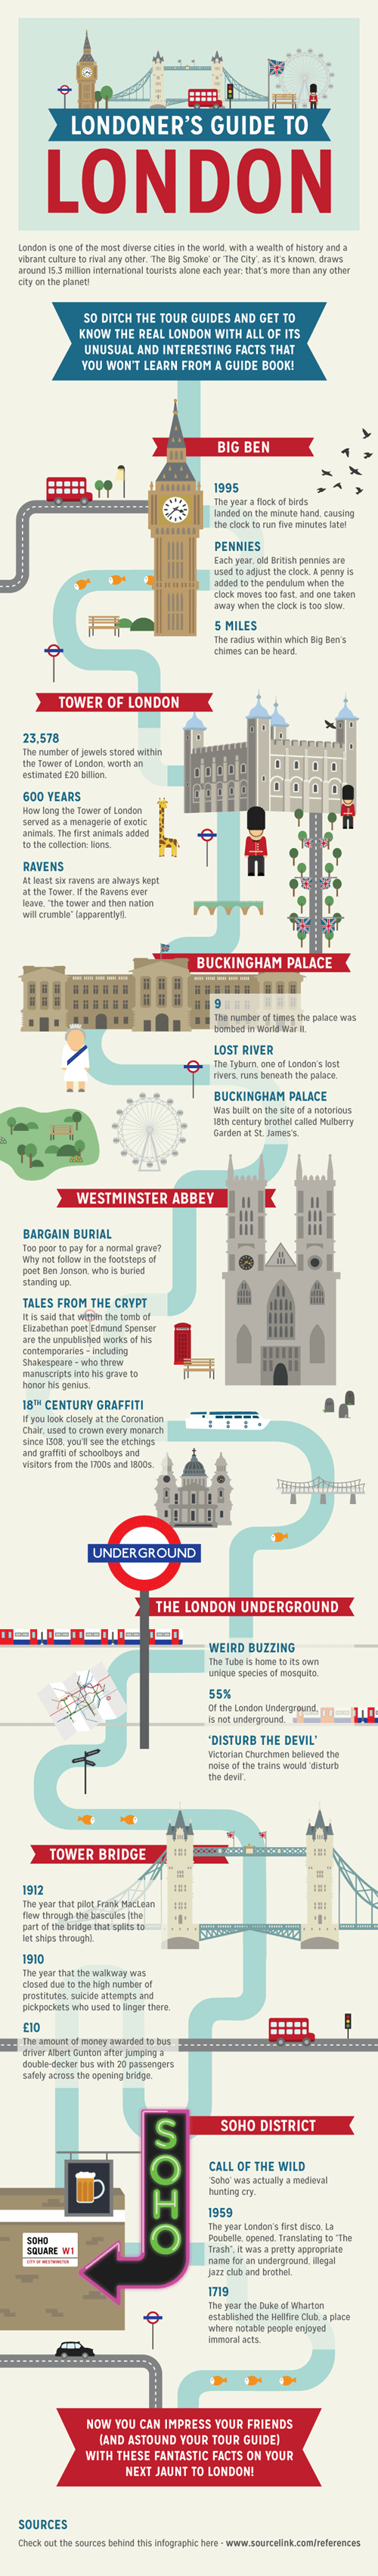 London traveling infographic